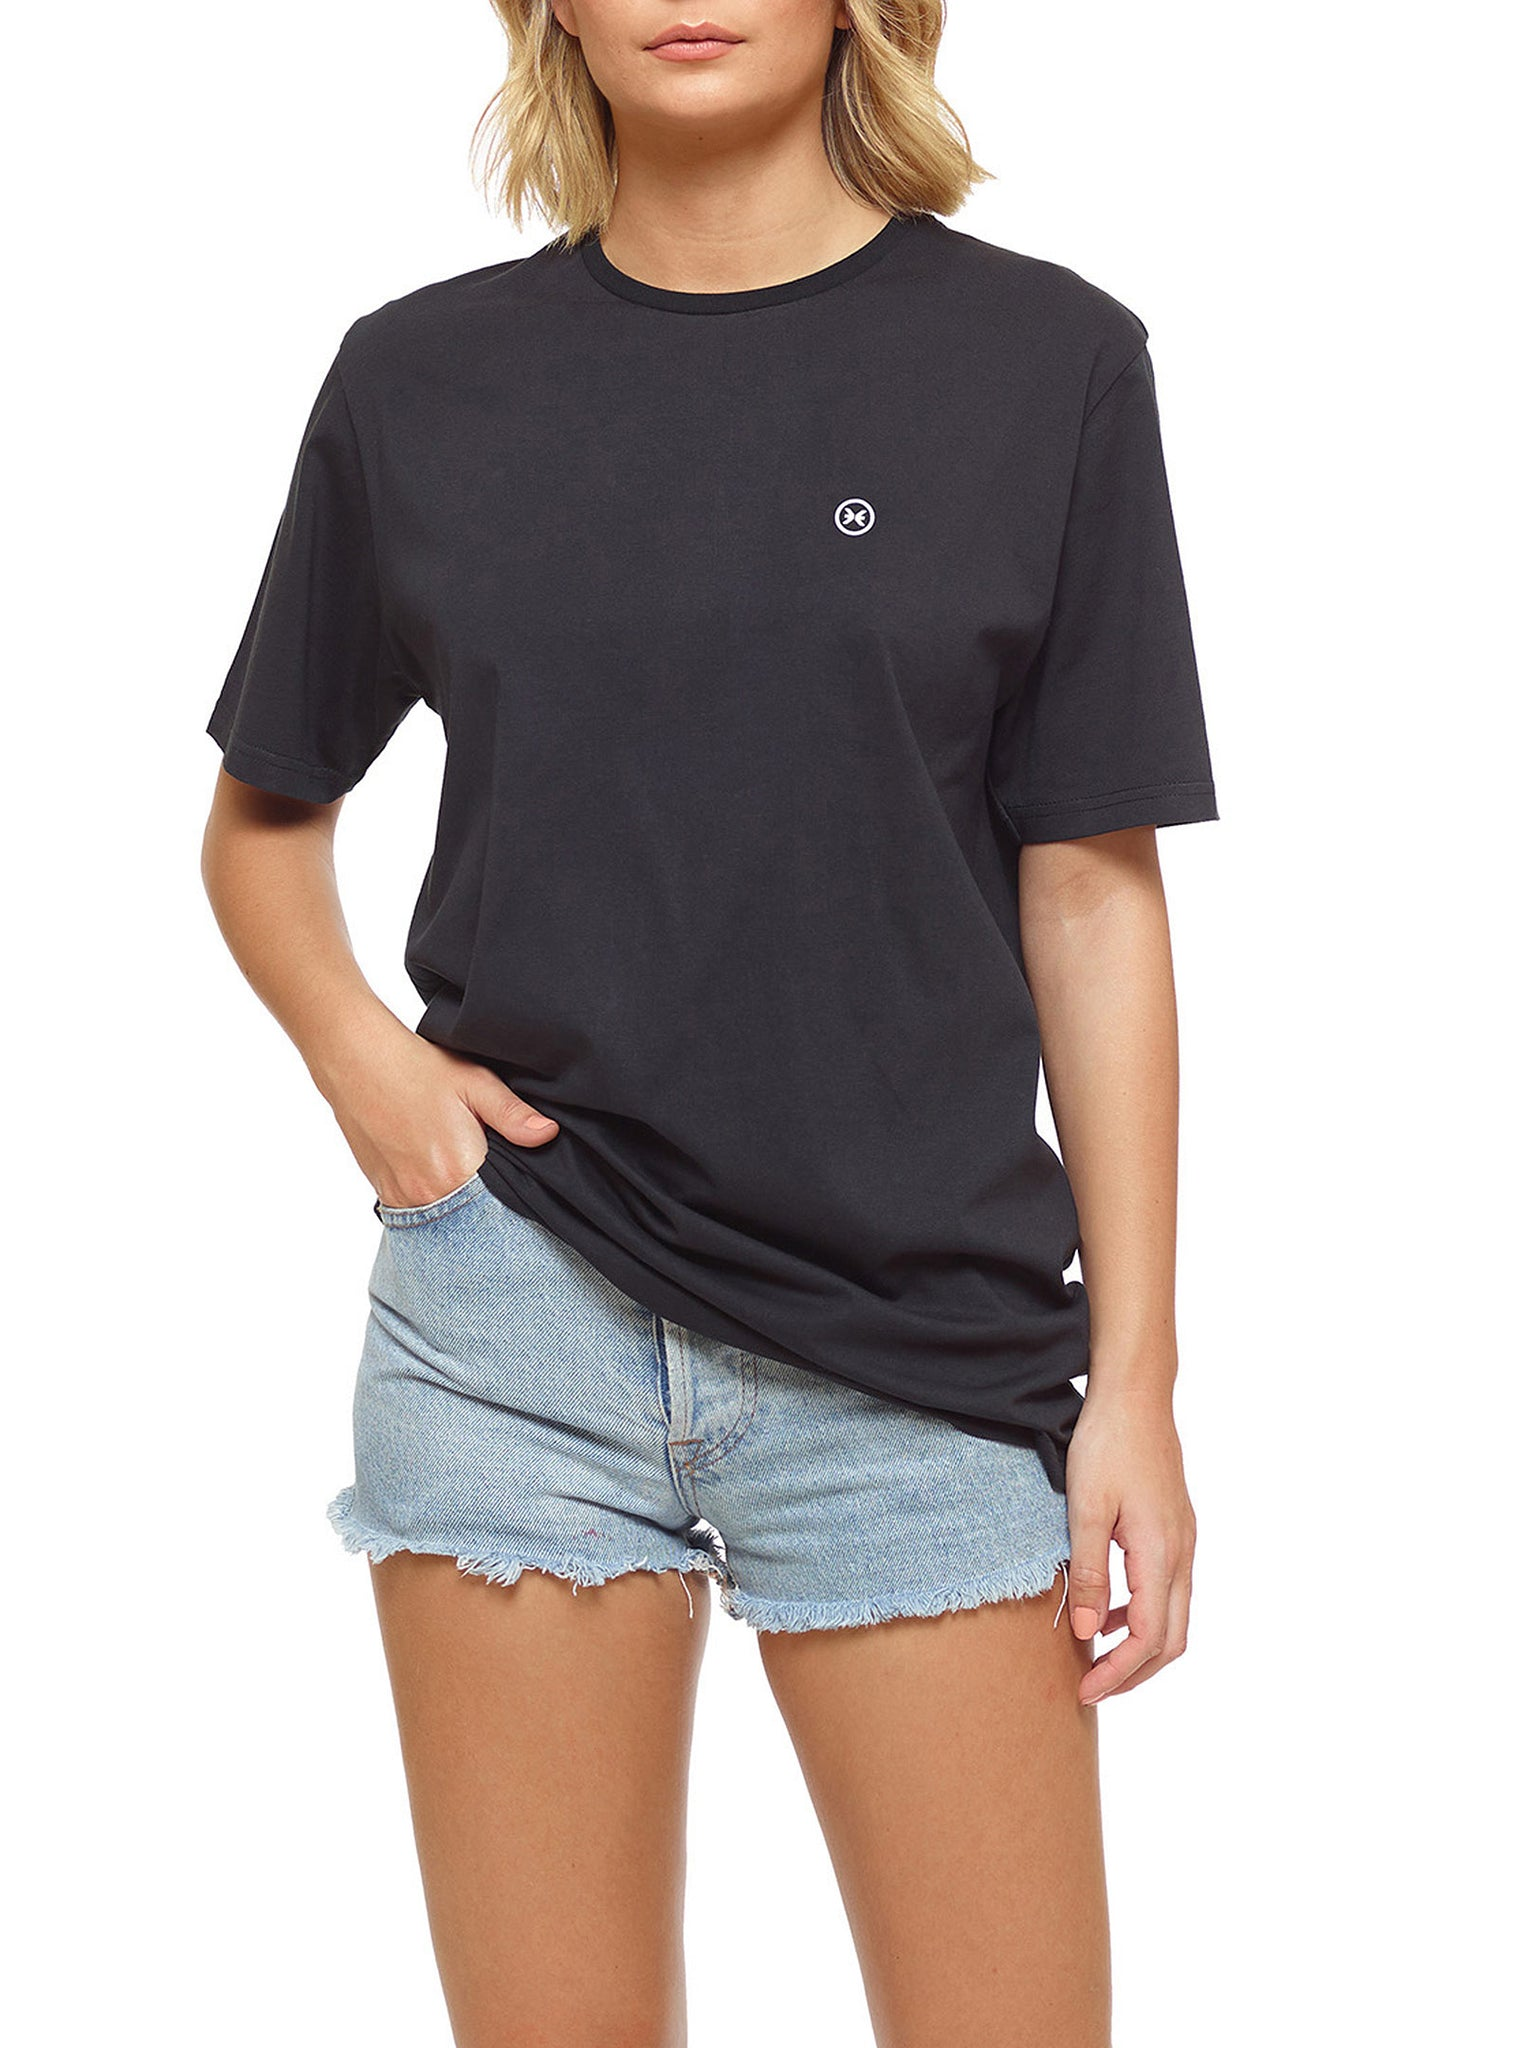 Embroidery T-shirt Preto